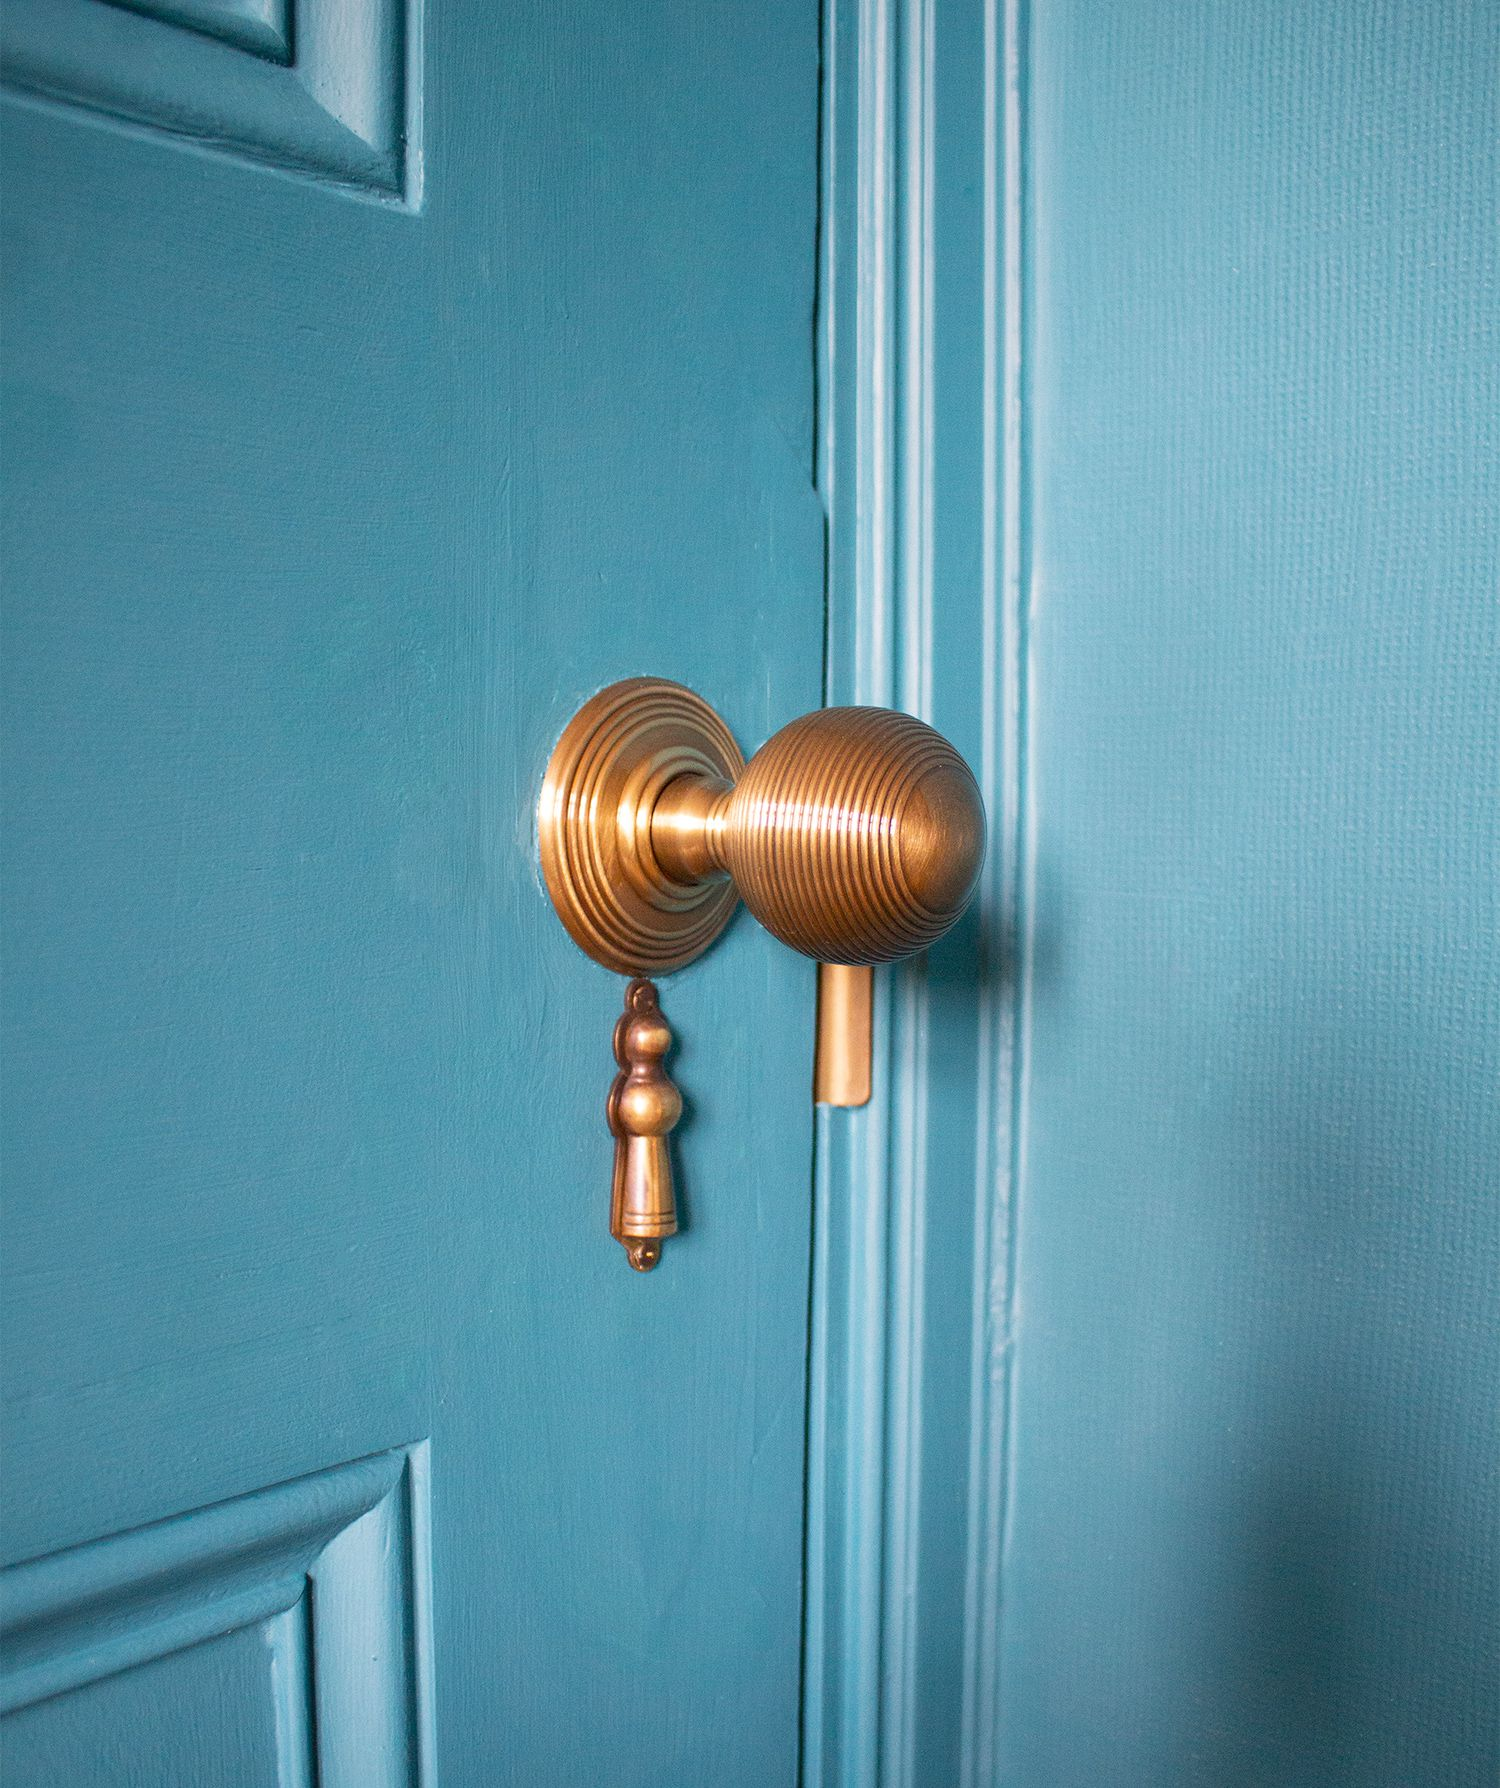 A close up of the new brass door handle in the teal painted room.